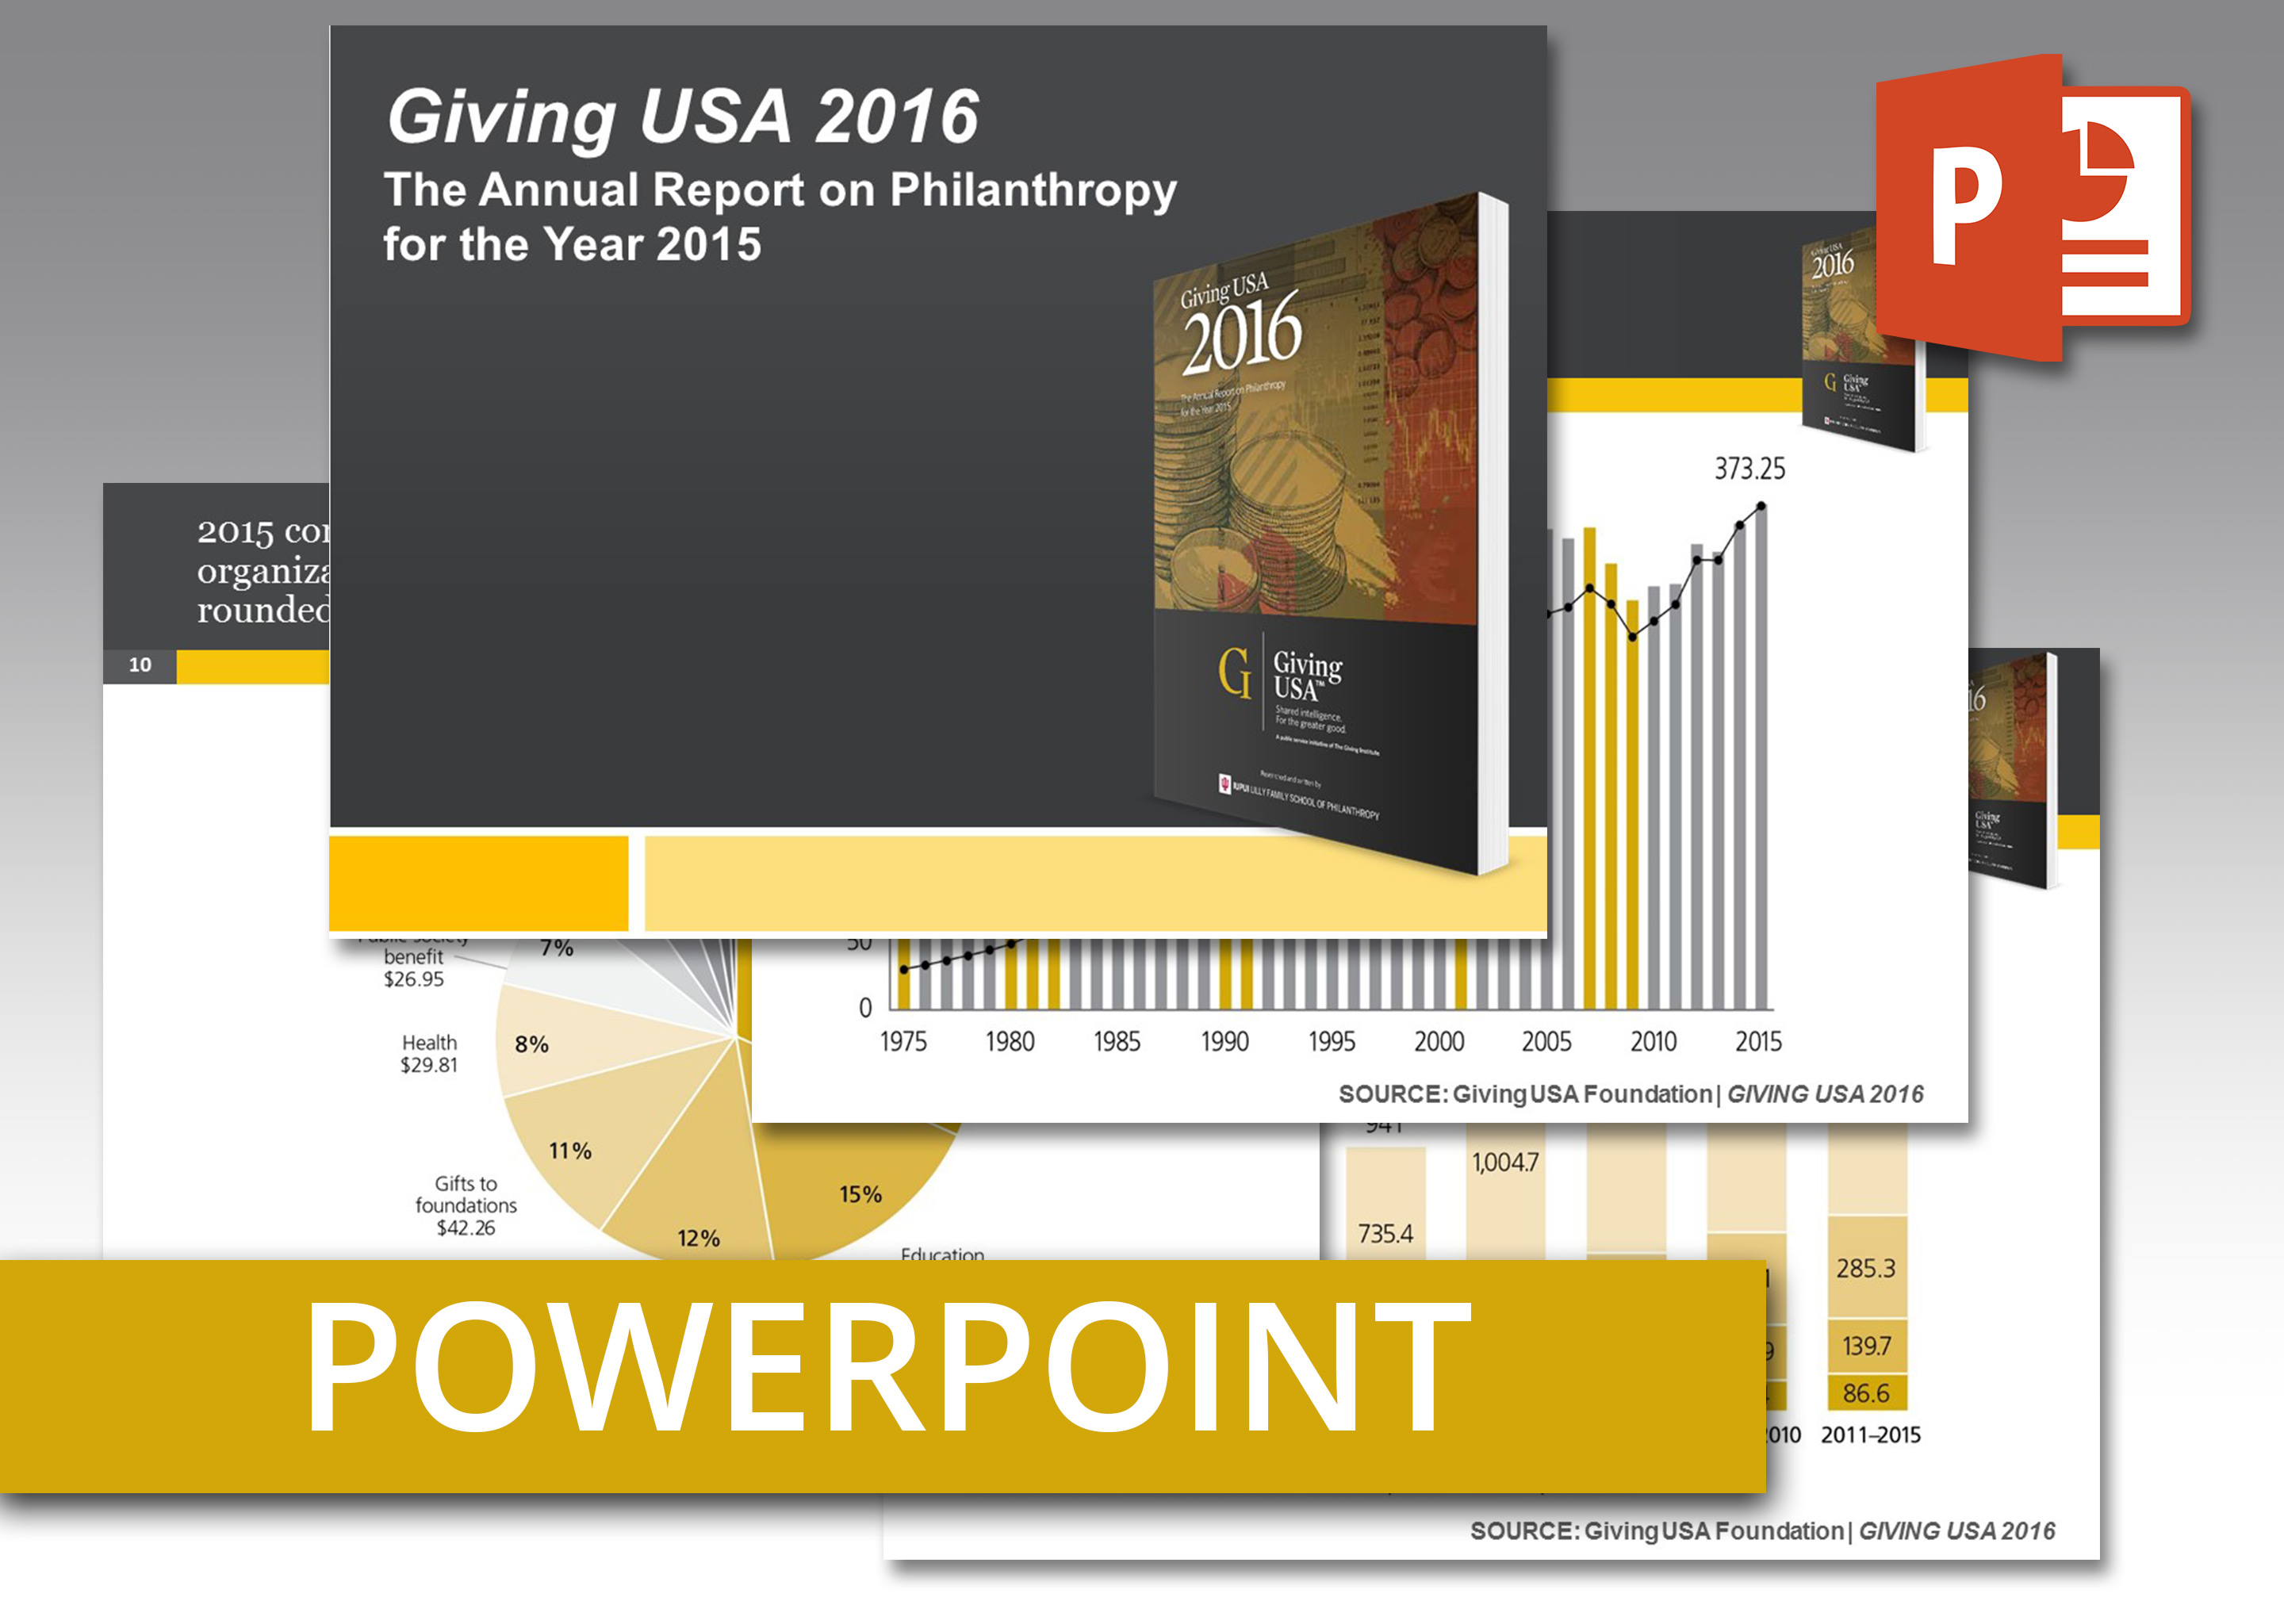 Usdgus  Unusual Giving Usa  Powerpoint An Easytouse Presentation Of Report  With Interesting Giving Usa  Powerpoint An Easytouse Presentation Of Report Findings Including Talking Points With Alluring Powerpoint Presentation Marketing Strategy Also Family Feud Template Powerpoint In Addition Powerpoint Animated Backgrounds Free And Authors Purpose Powerpoint As Well As Happy Birthday Powerpoint Additionally Physical Therapy Modalities Powerpoint From Givingusaorg With Usdgus  Interesting Giving Usa  Powerpoint An Easytouse Presentation Of Report  With Alluring Giving Usa  Powerpoint An Easytouse Presentation Of Report Findings Including Talking Points And Unusual Powerpoint Presentation Marketing Strategy Also Family Feud Template Powerpoint In Addition Powerpoint Animated Backgrounds Free From Givingusaorg